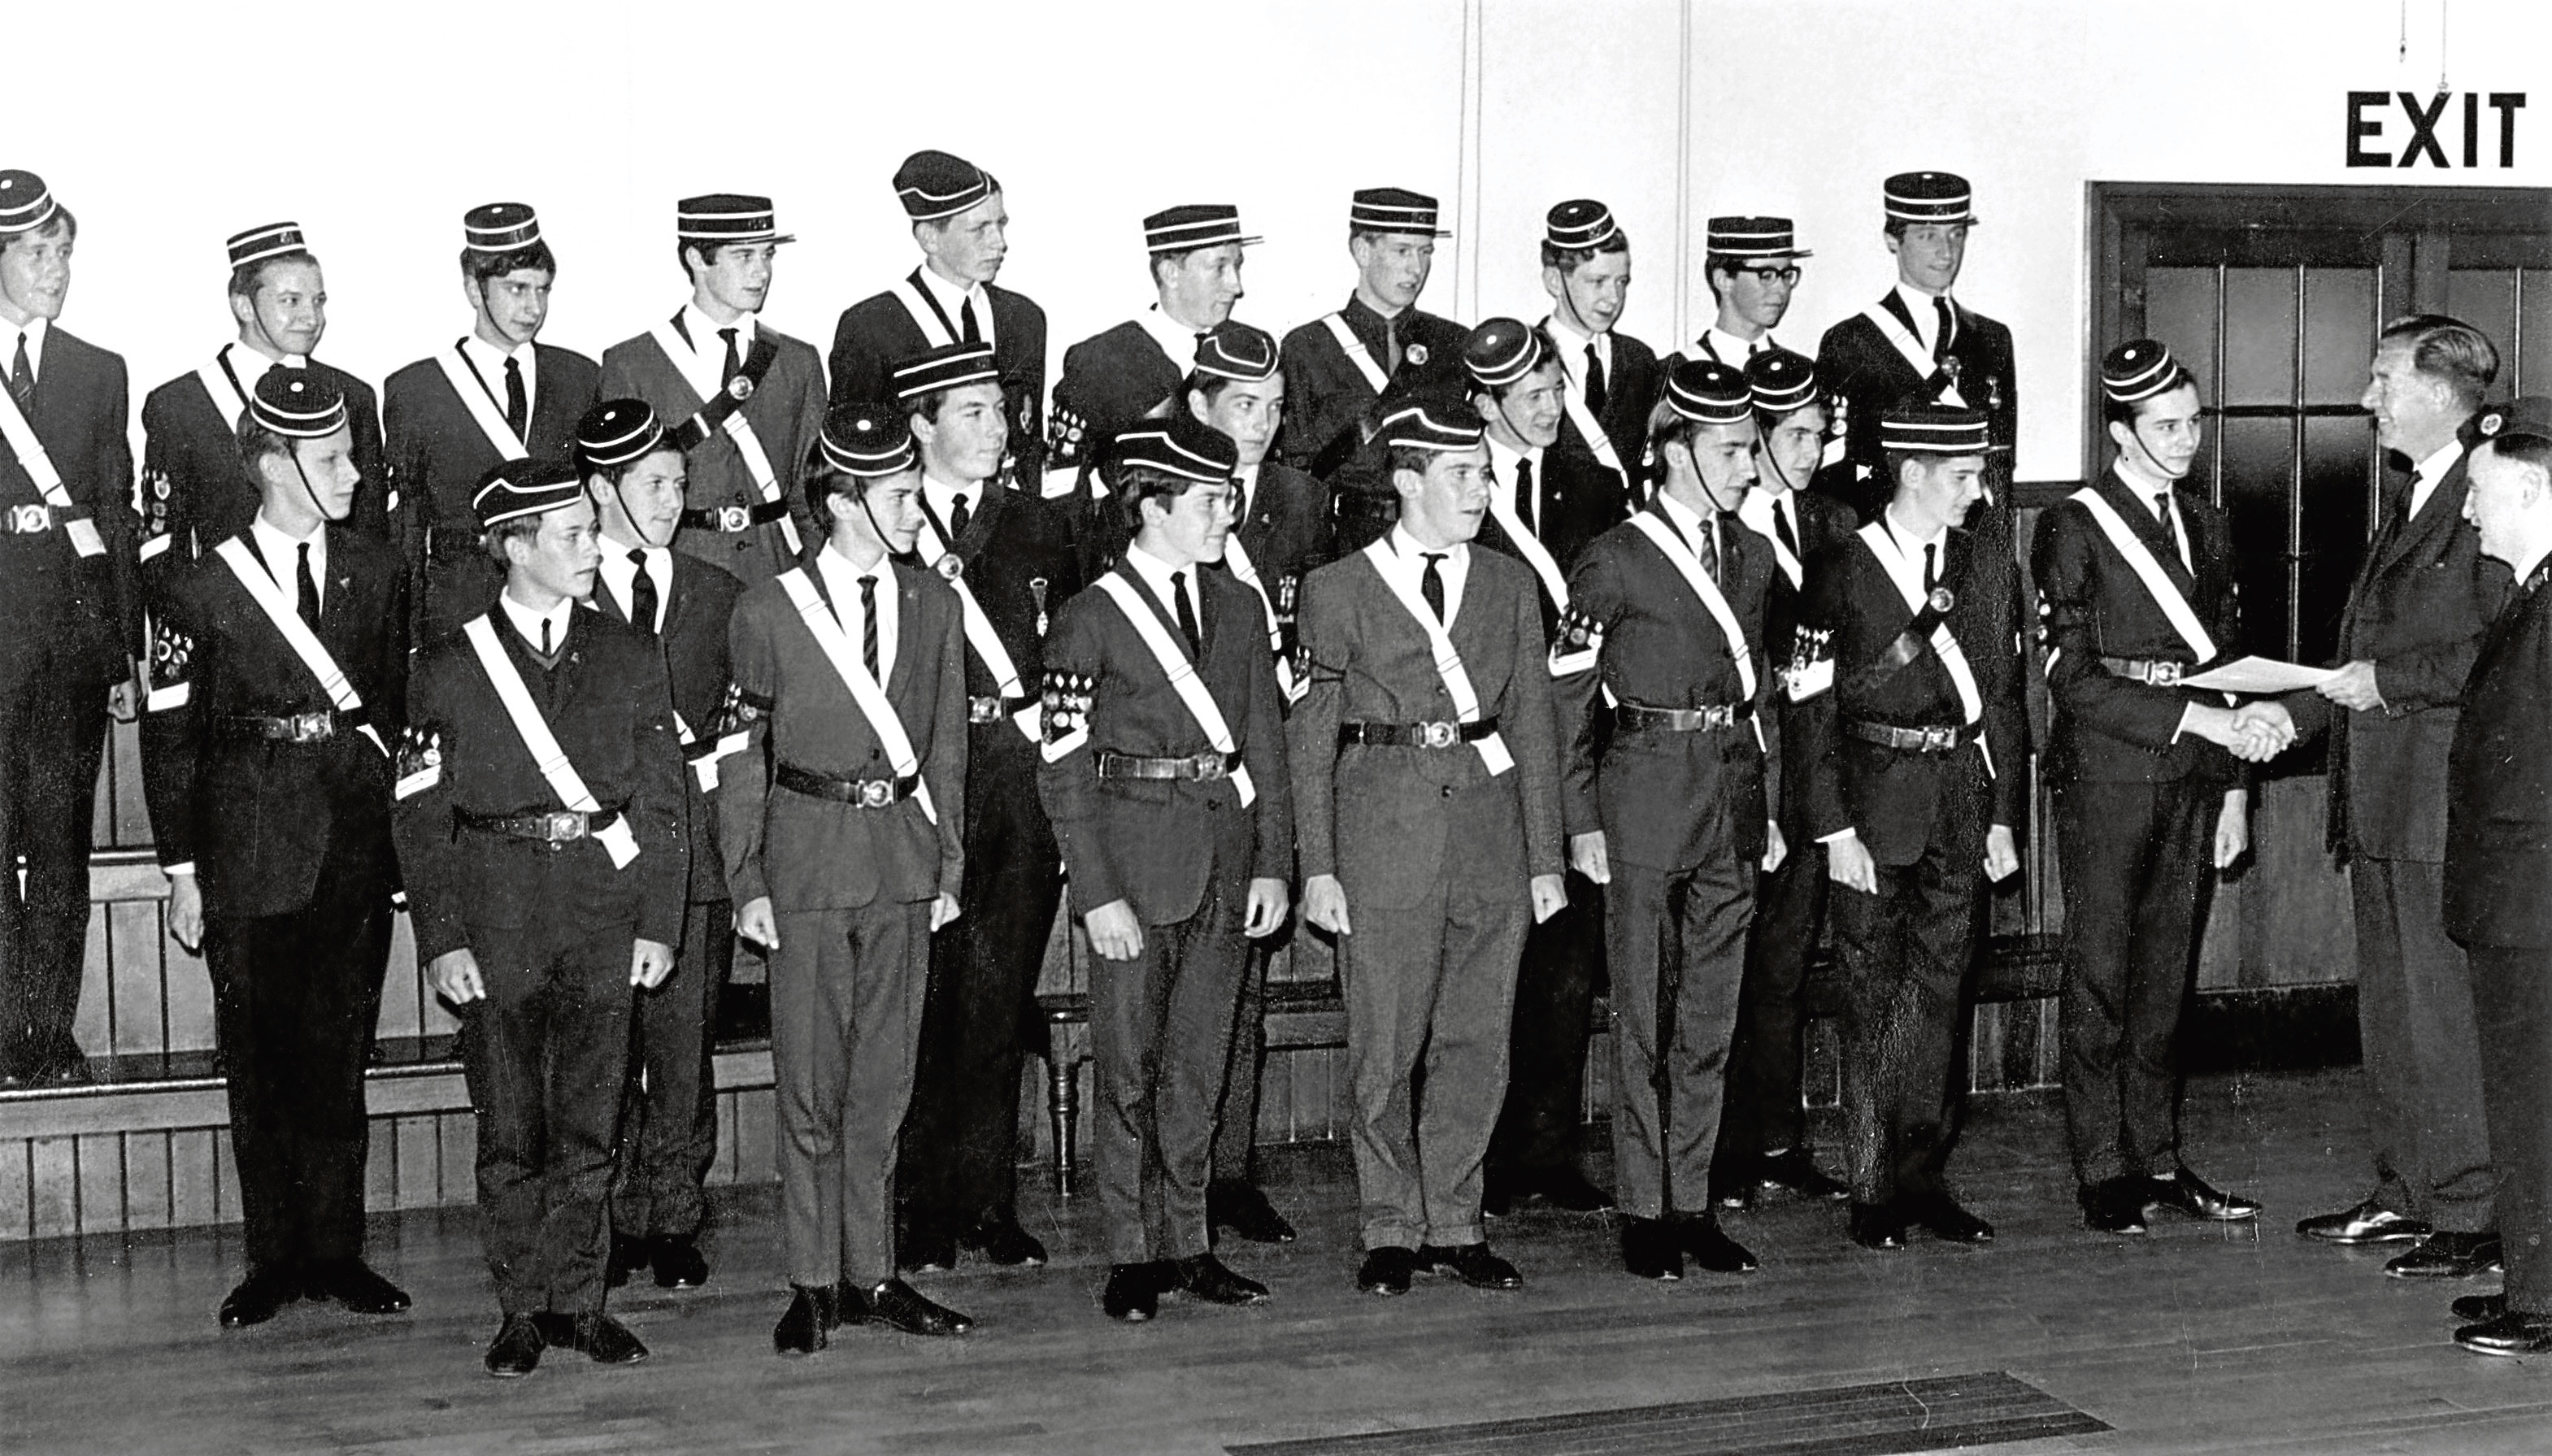 Aberdeen Battalion Boys' Brigade members who received Queen's Certificates and Badges at battalion headquarters.